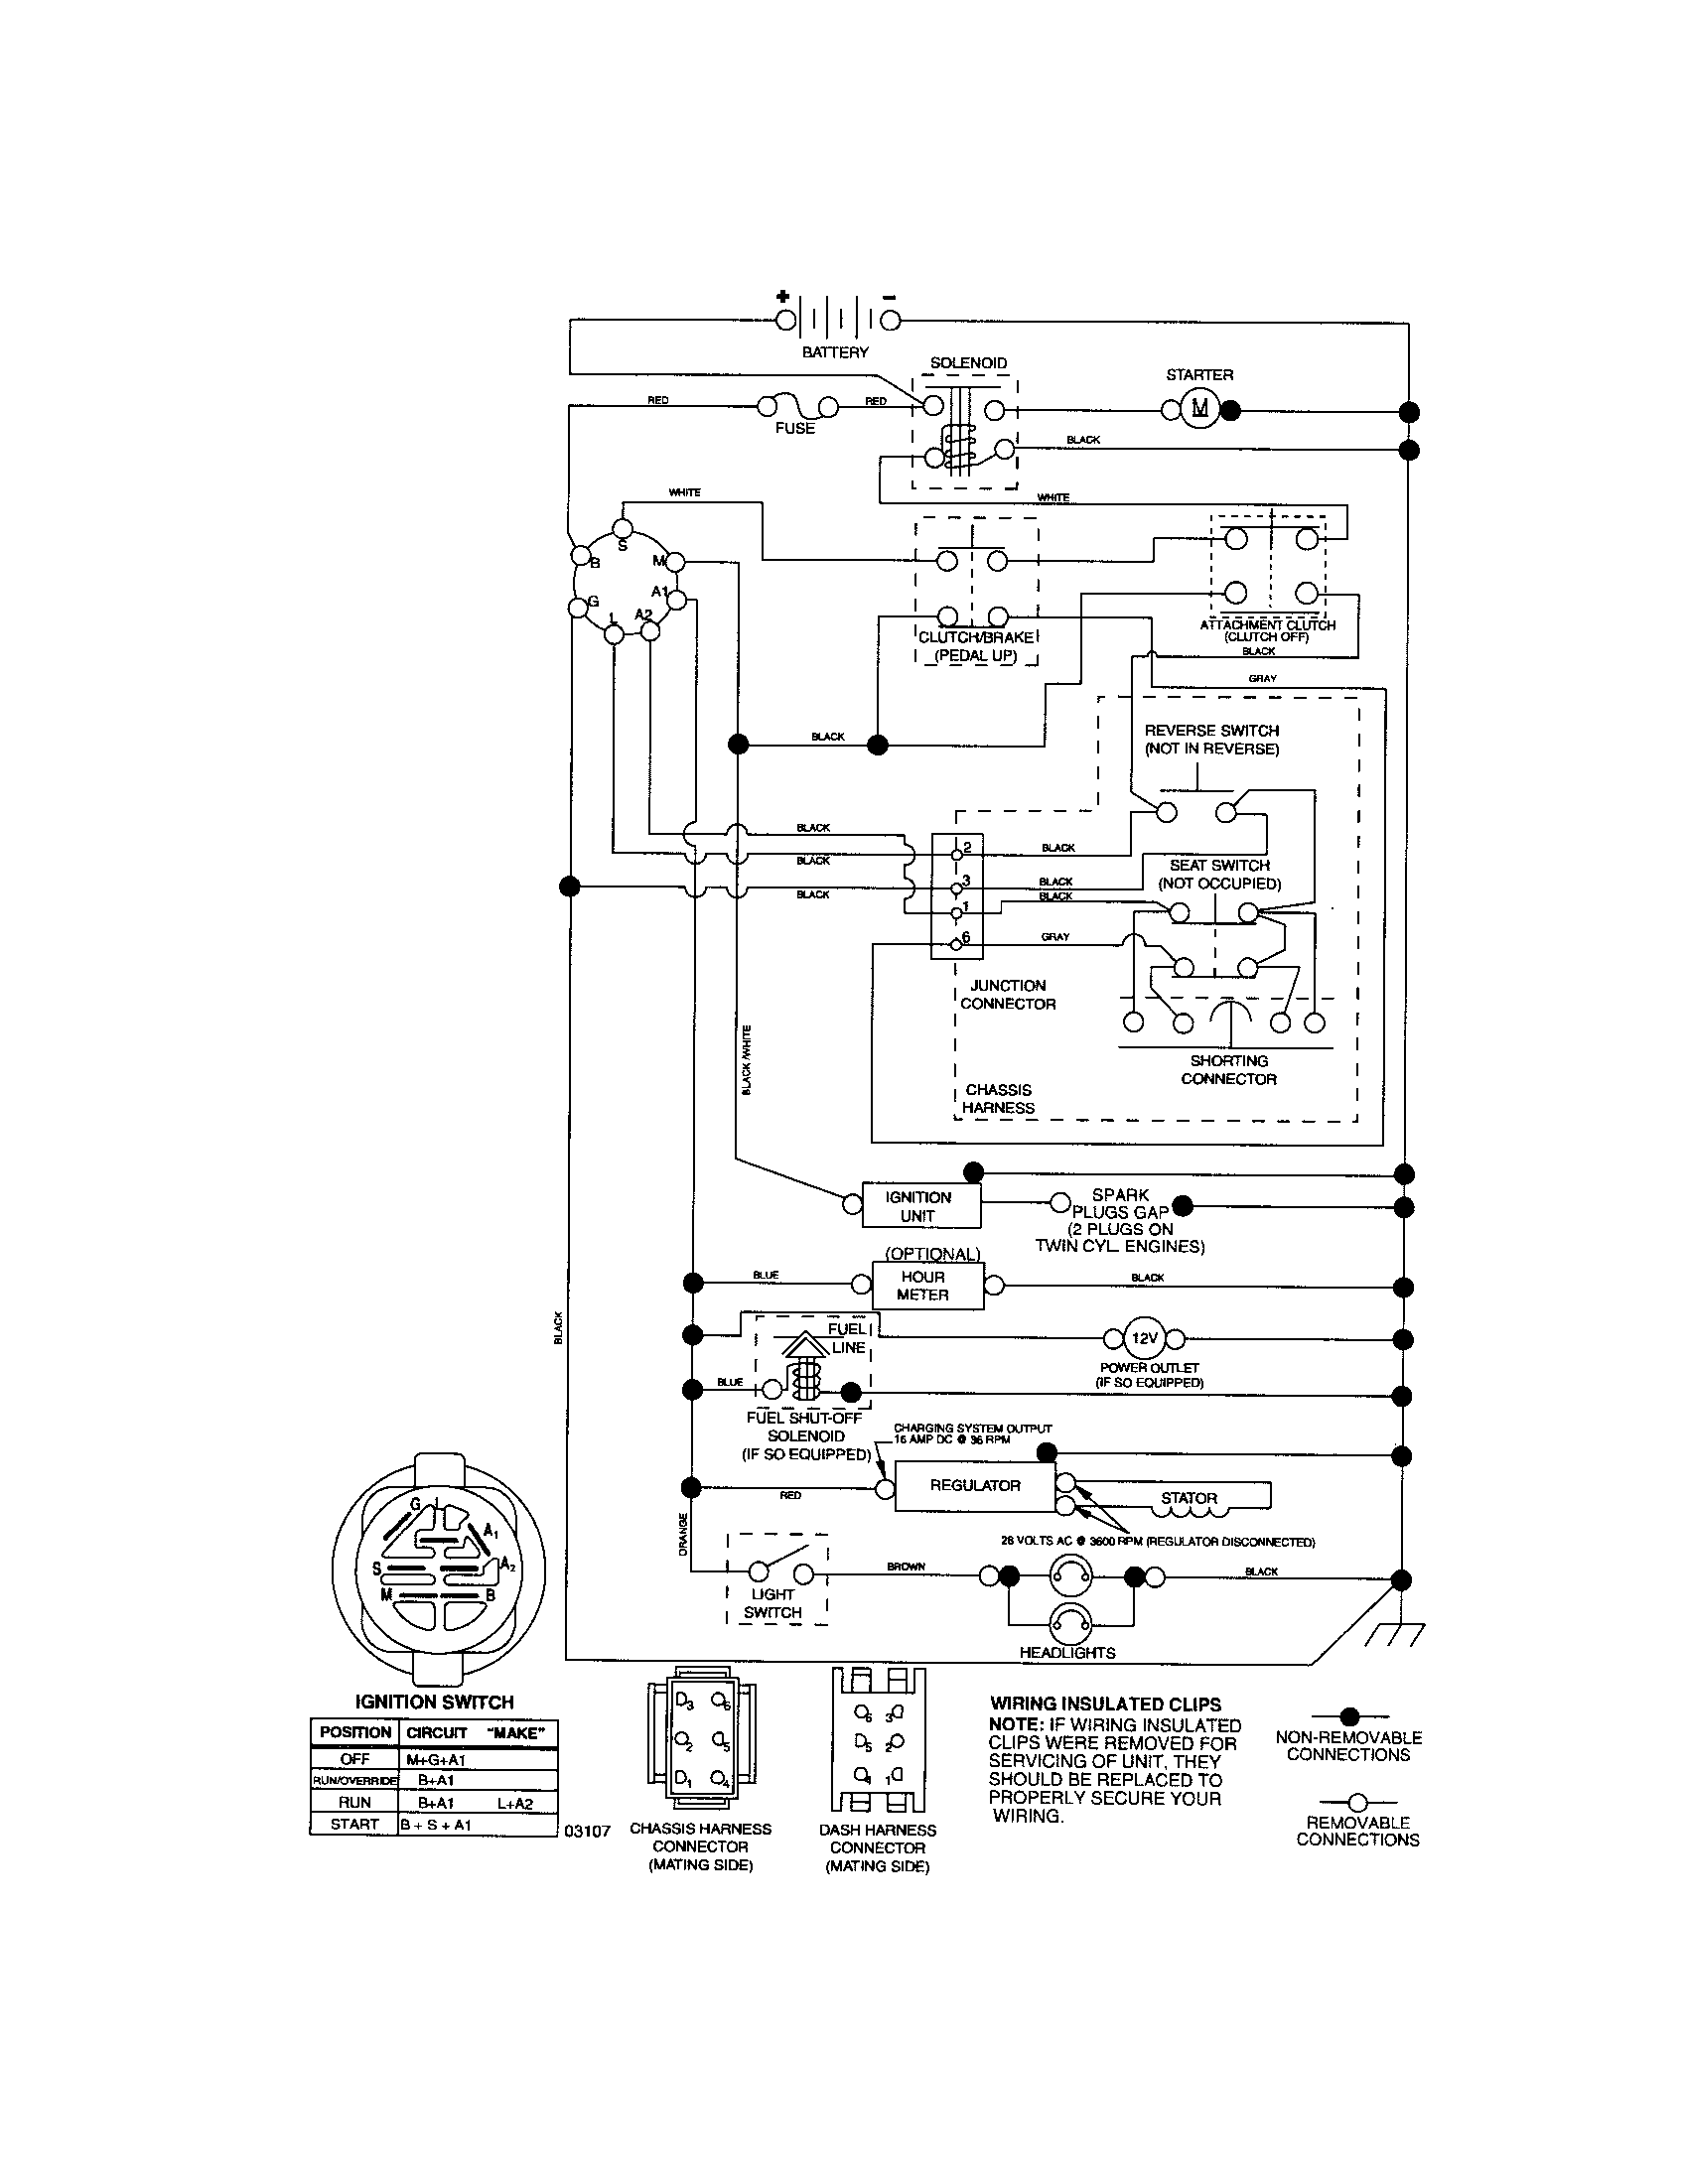 craftsman mower electrical diagram wiring diagram craftsman lawn mower i need